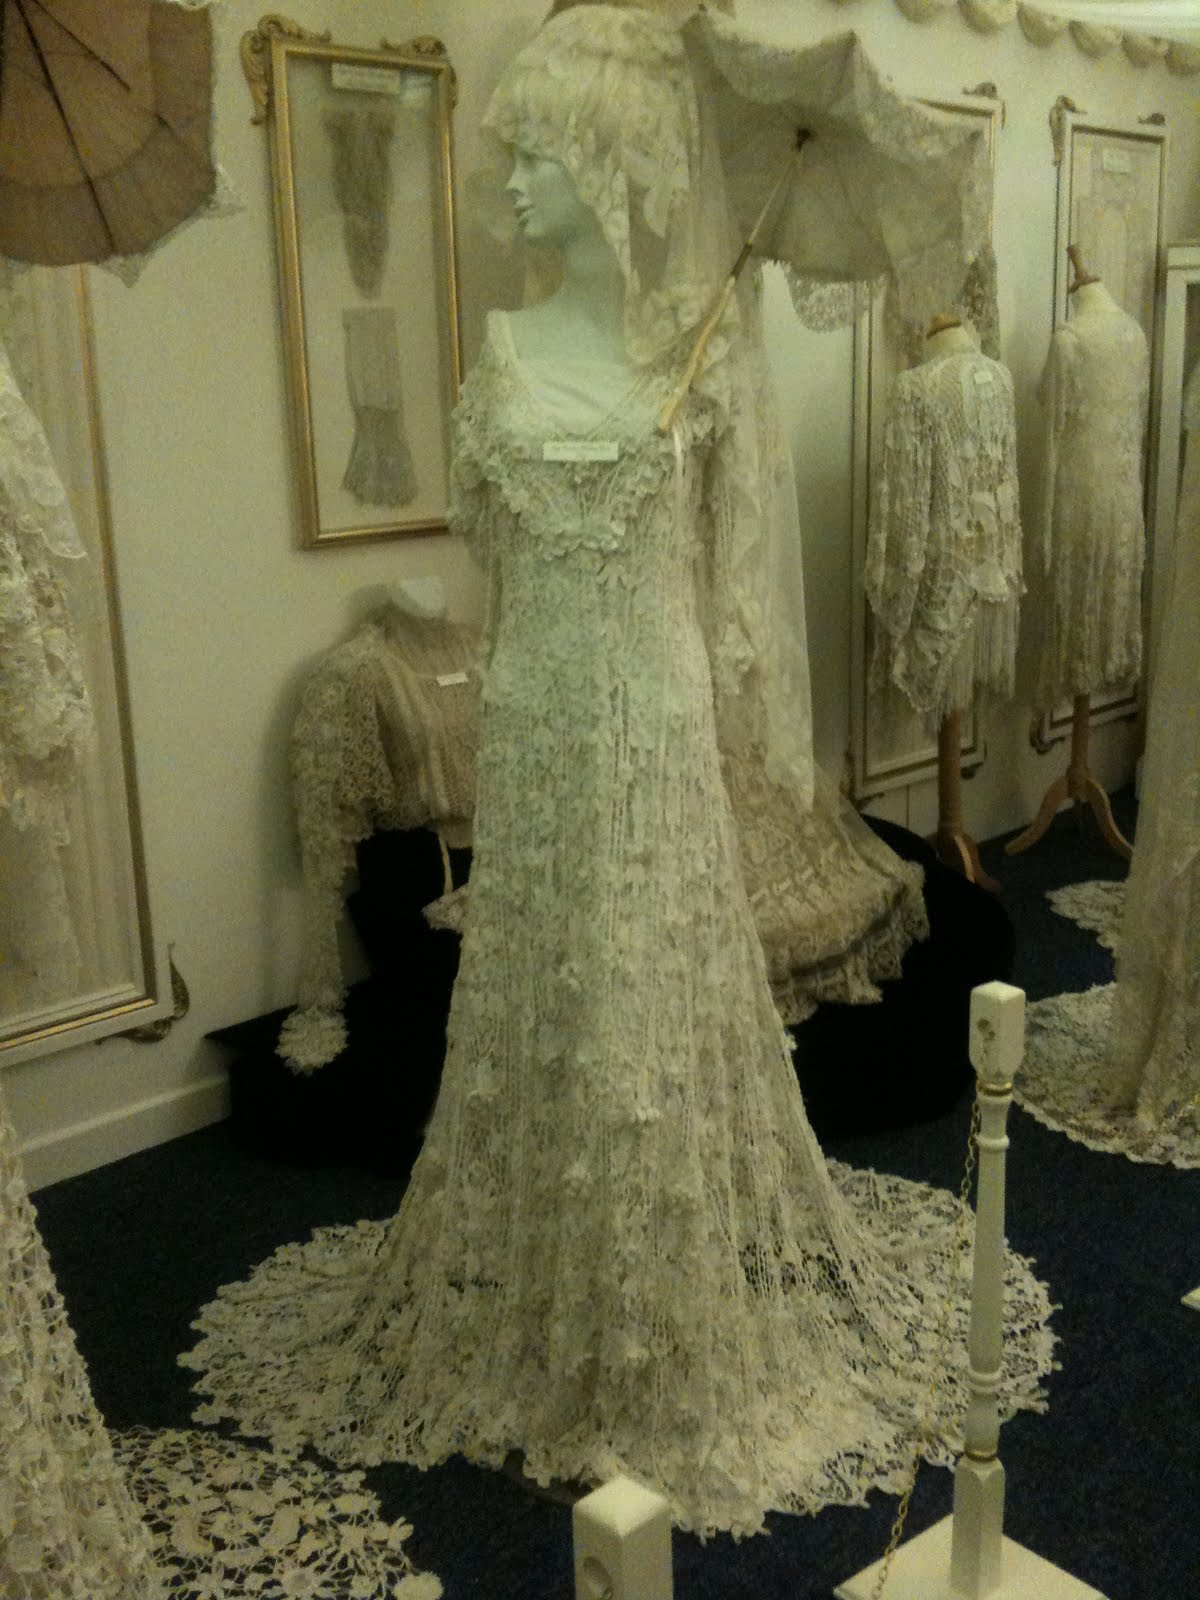 Rosemary cathcart antique lace and vintage fashion march 2011 for Lace antique wedding dress